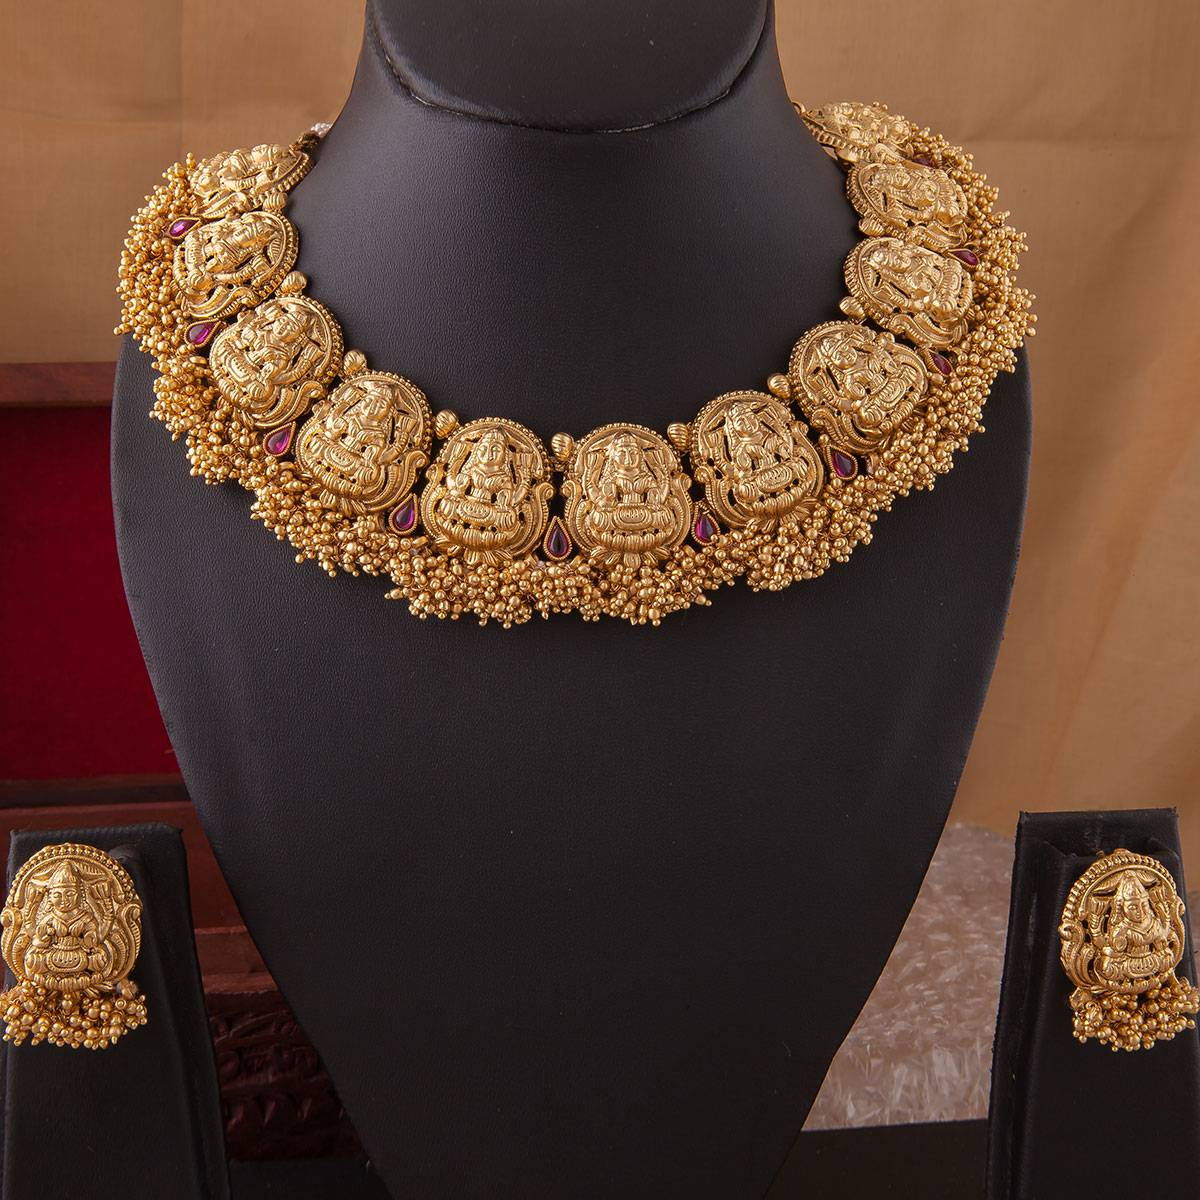 CHETTINAD NECKLACE NKCH - 30 - 0561120146